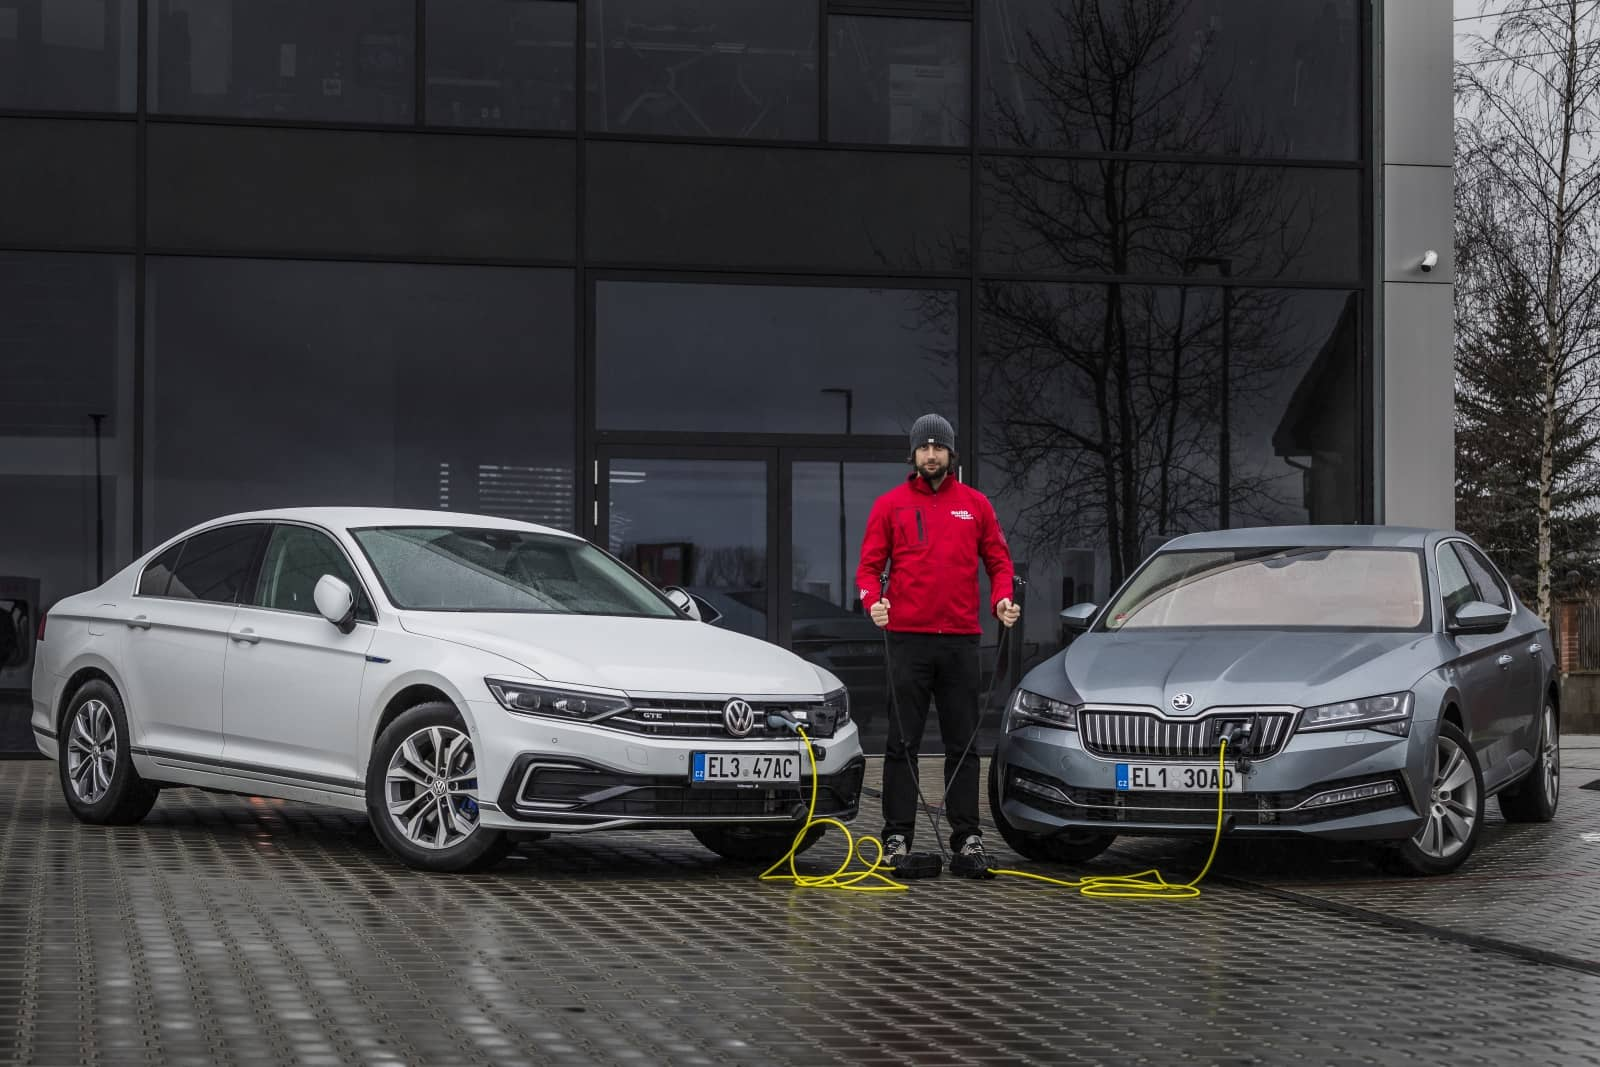 aDMB2020_Superb iV vs. Passat GTE-0769